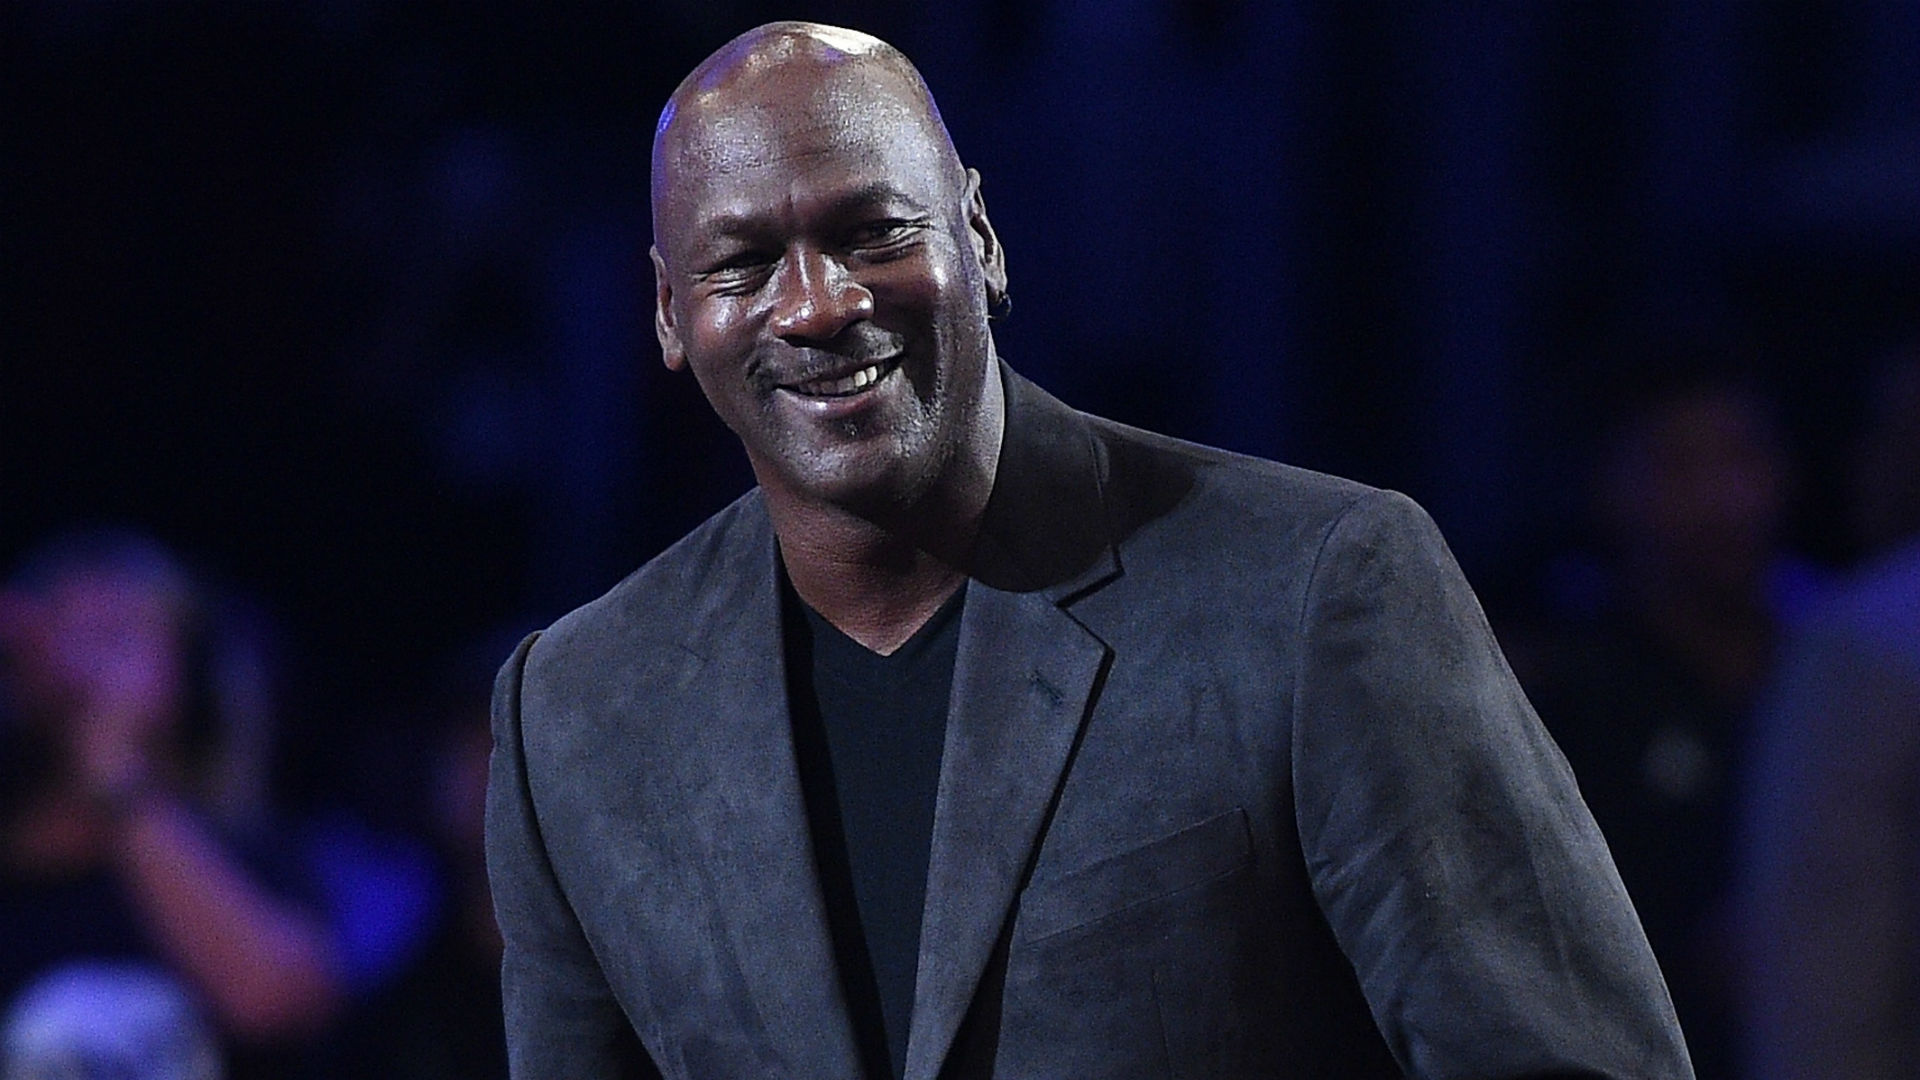 Michael Jordan: Six titles harder than Westbrook and Harden streaks